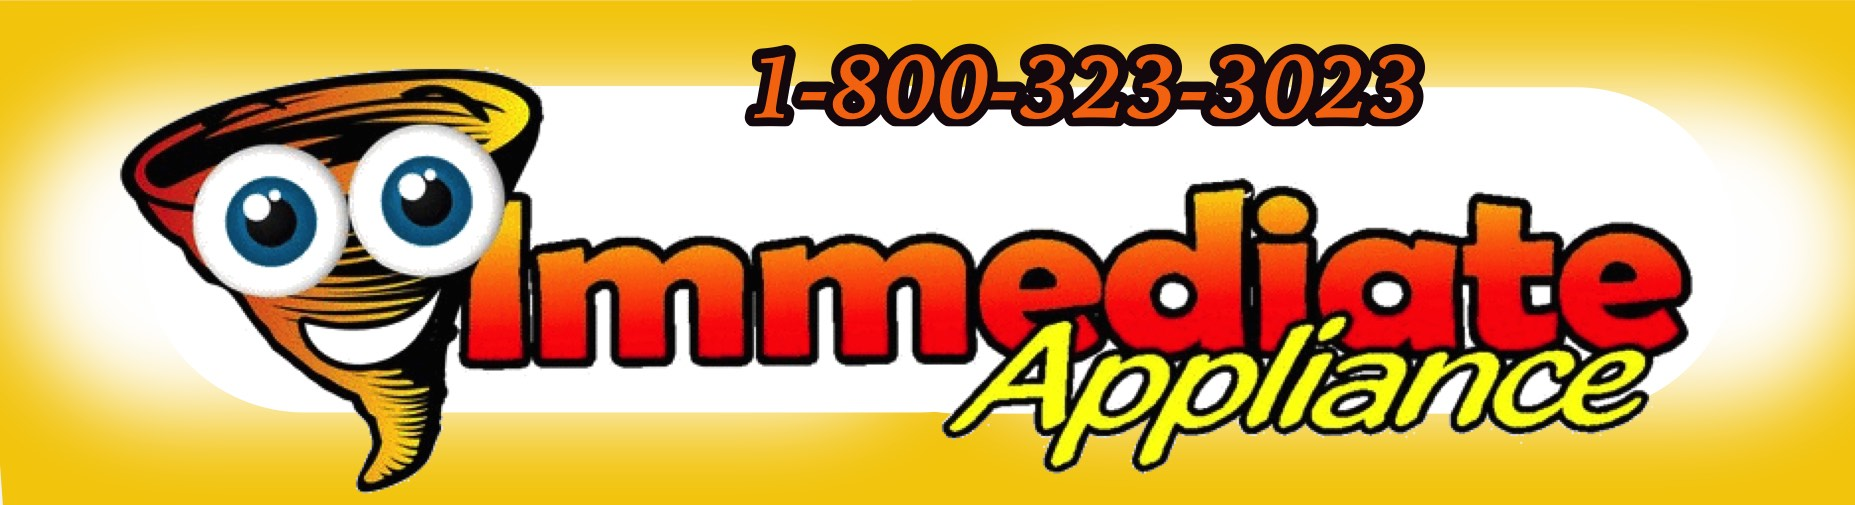 Contact Info Image For Appliance Repair In New Jersey - Immediate Appliance Repair